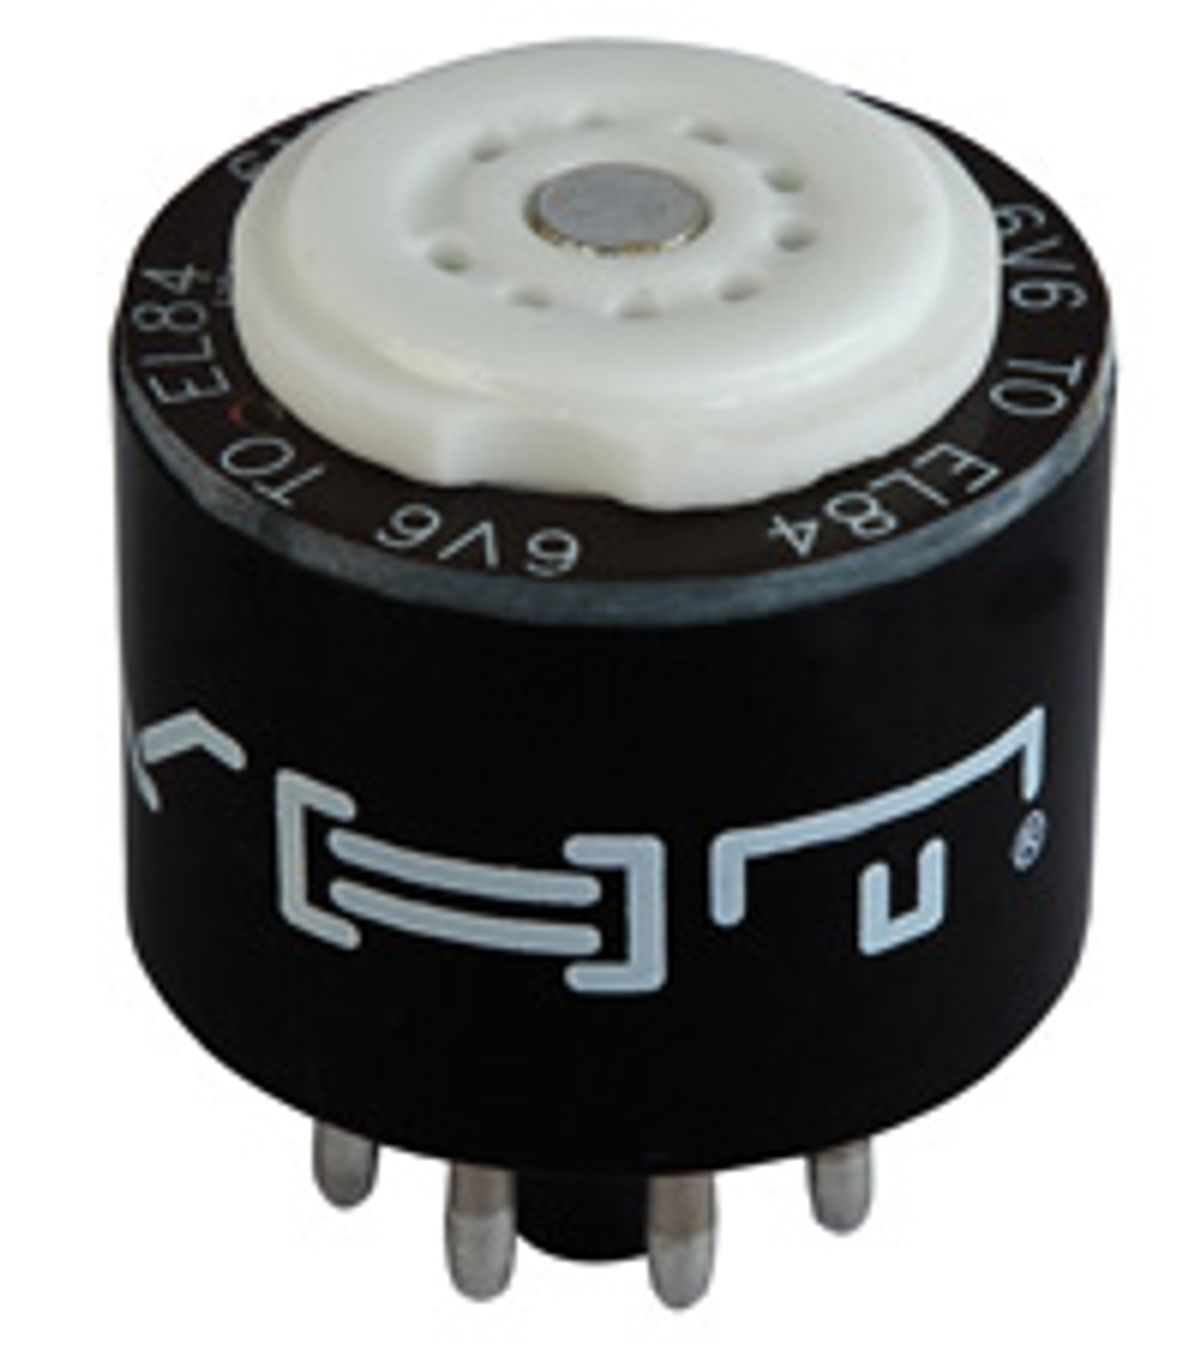 VHT Announces 6V6 to EL84 Adapter for Special 6